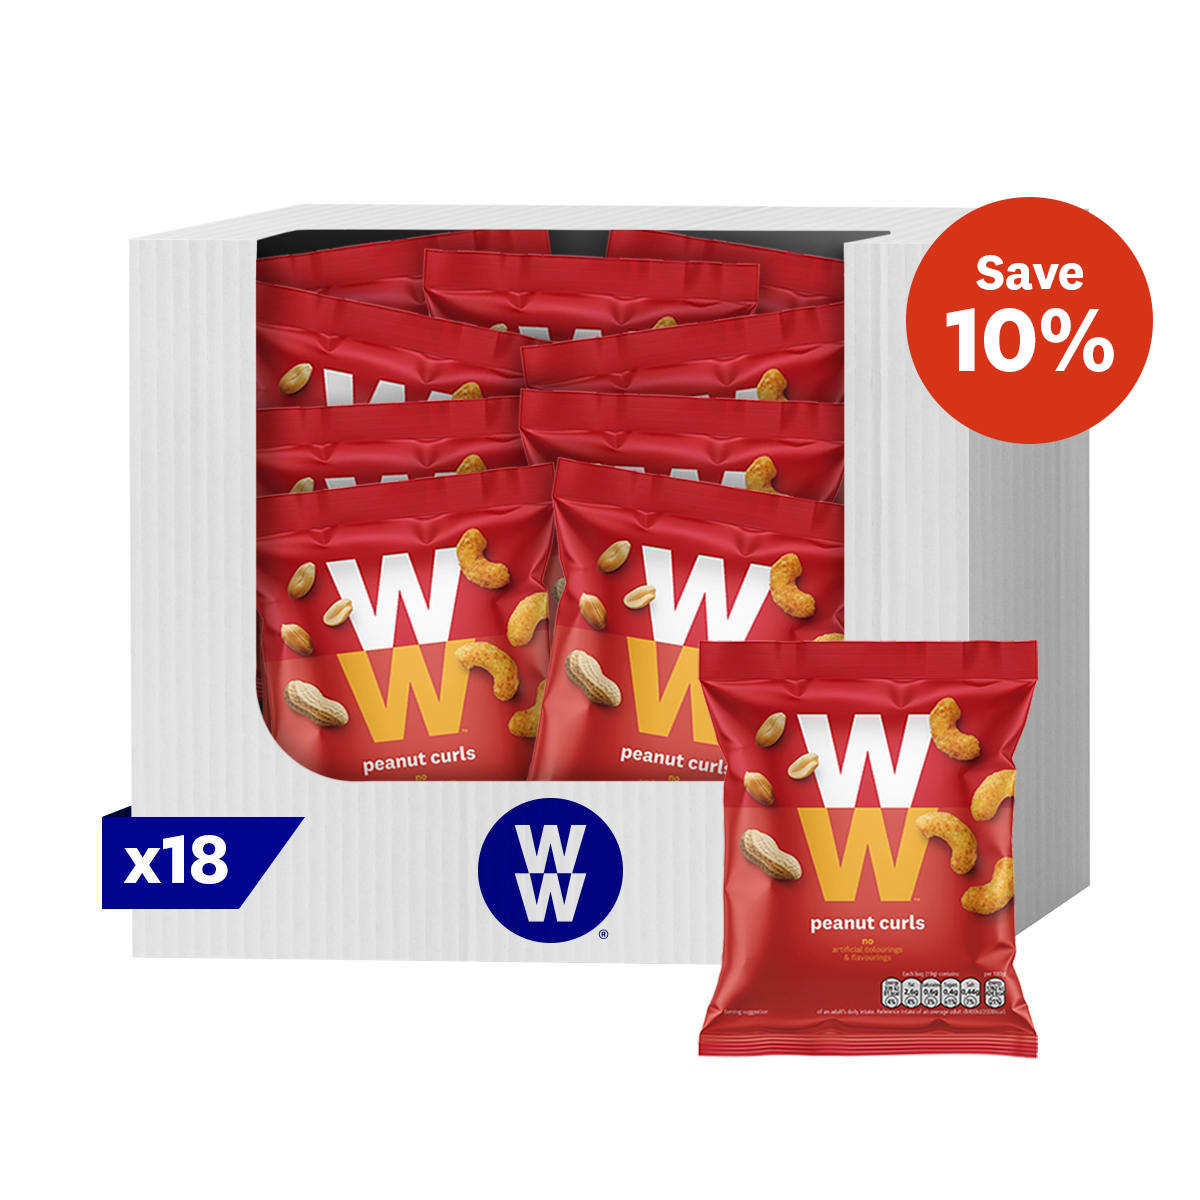 Box of 18, crispy maize WW Peanut Curls, on-the-go snack, crunchy, 2 SmartPoints values, suitable for vegetarians